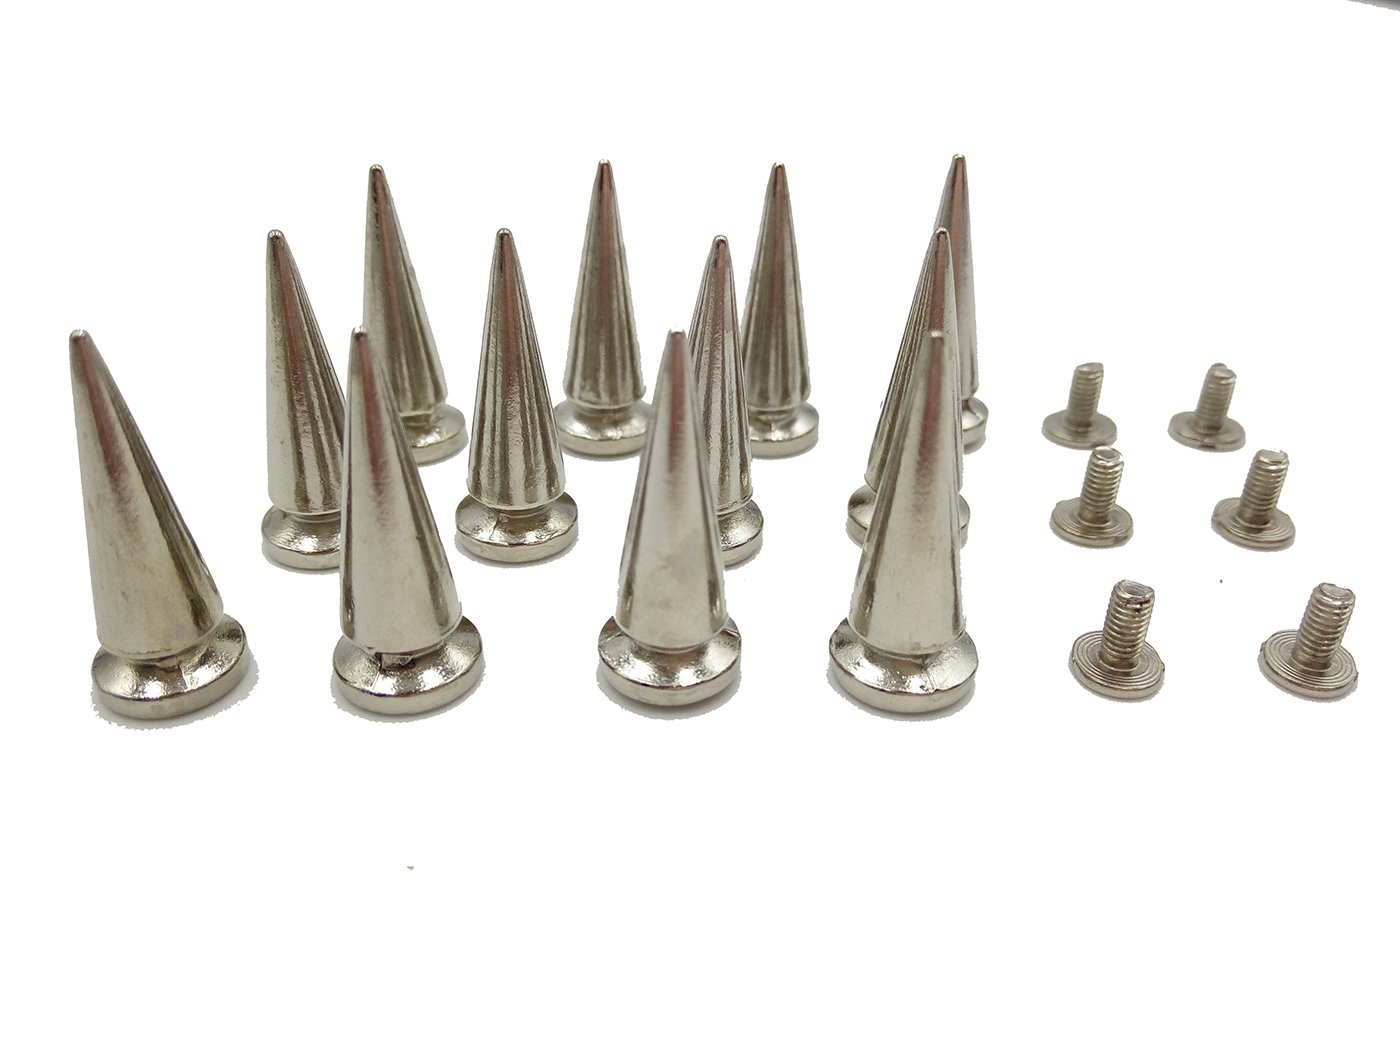 Inton Metal Spike Studs and Spikes Punk Studs For Leathercraft Rivet Bullet Leather Clothing Punk DIY Leather Crafts 20 PCS (25MM, Black) Wenzhou Inton Enterprise IN-6806A